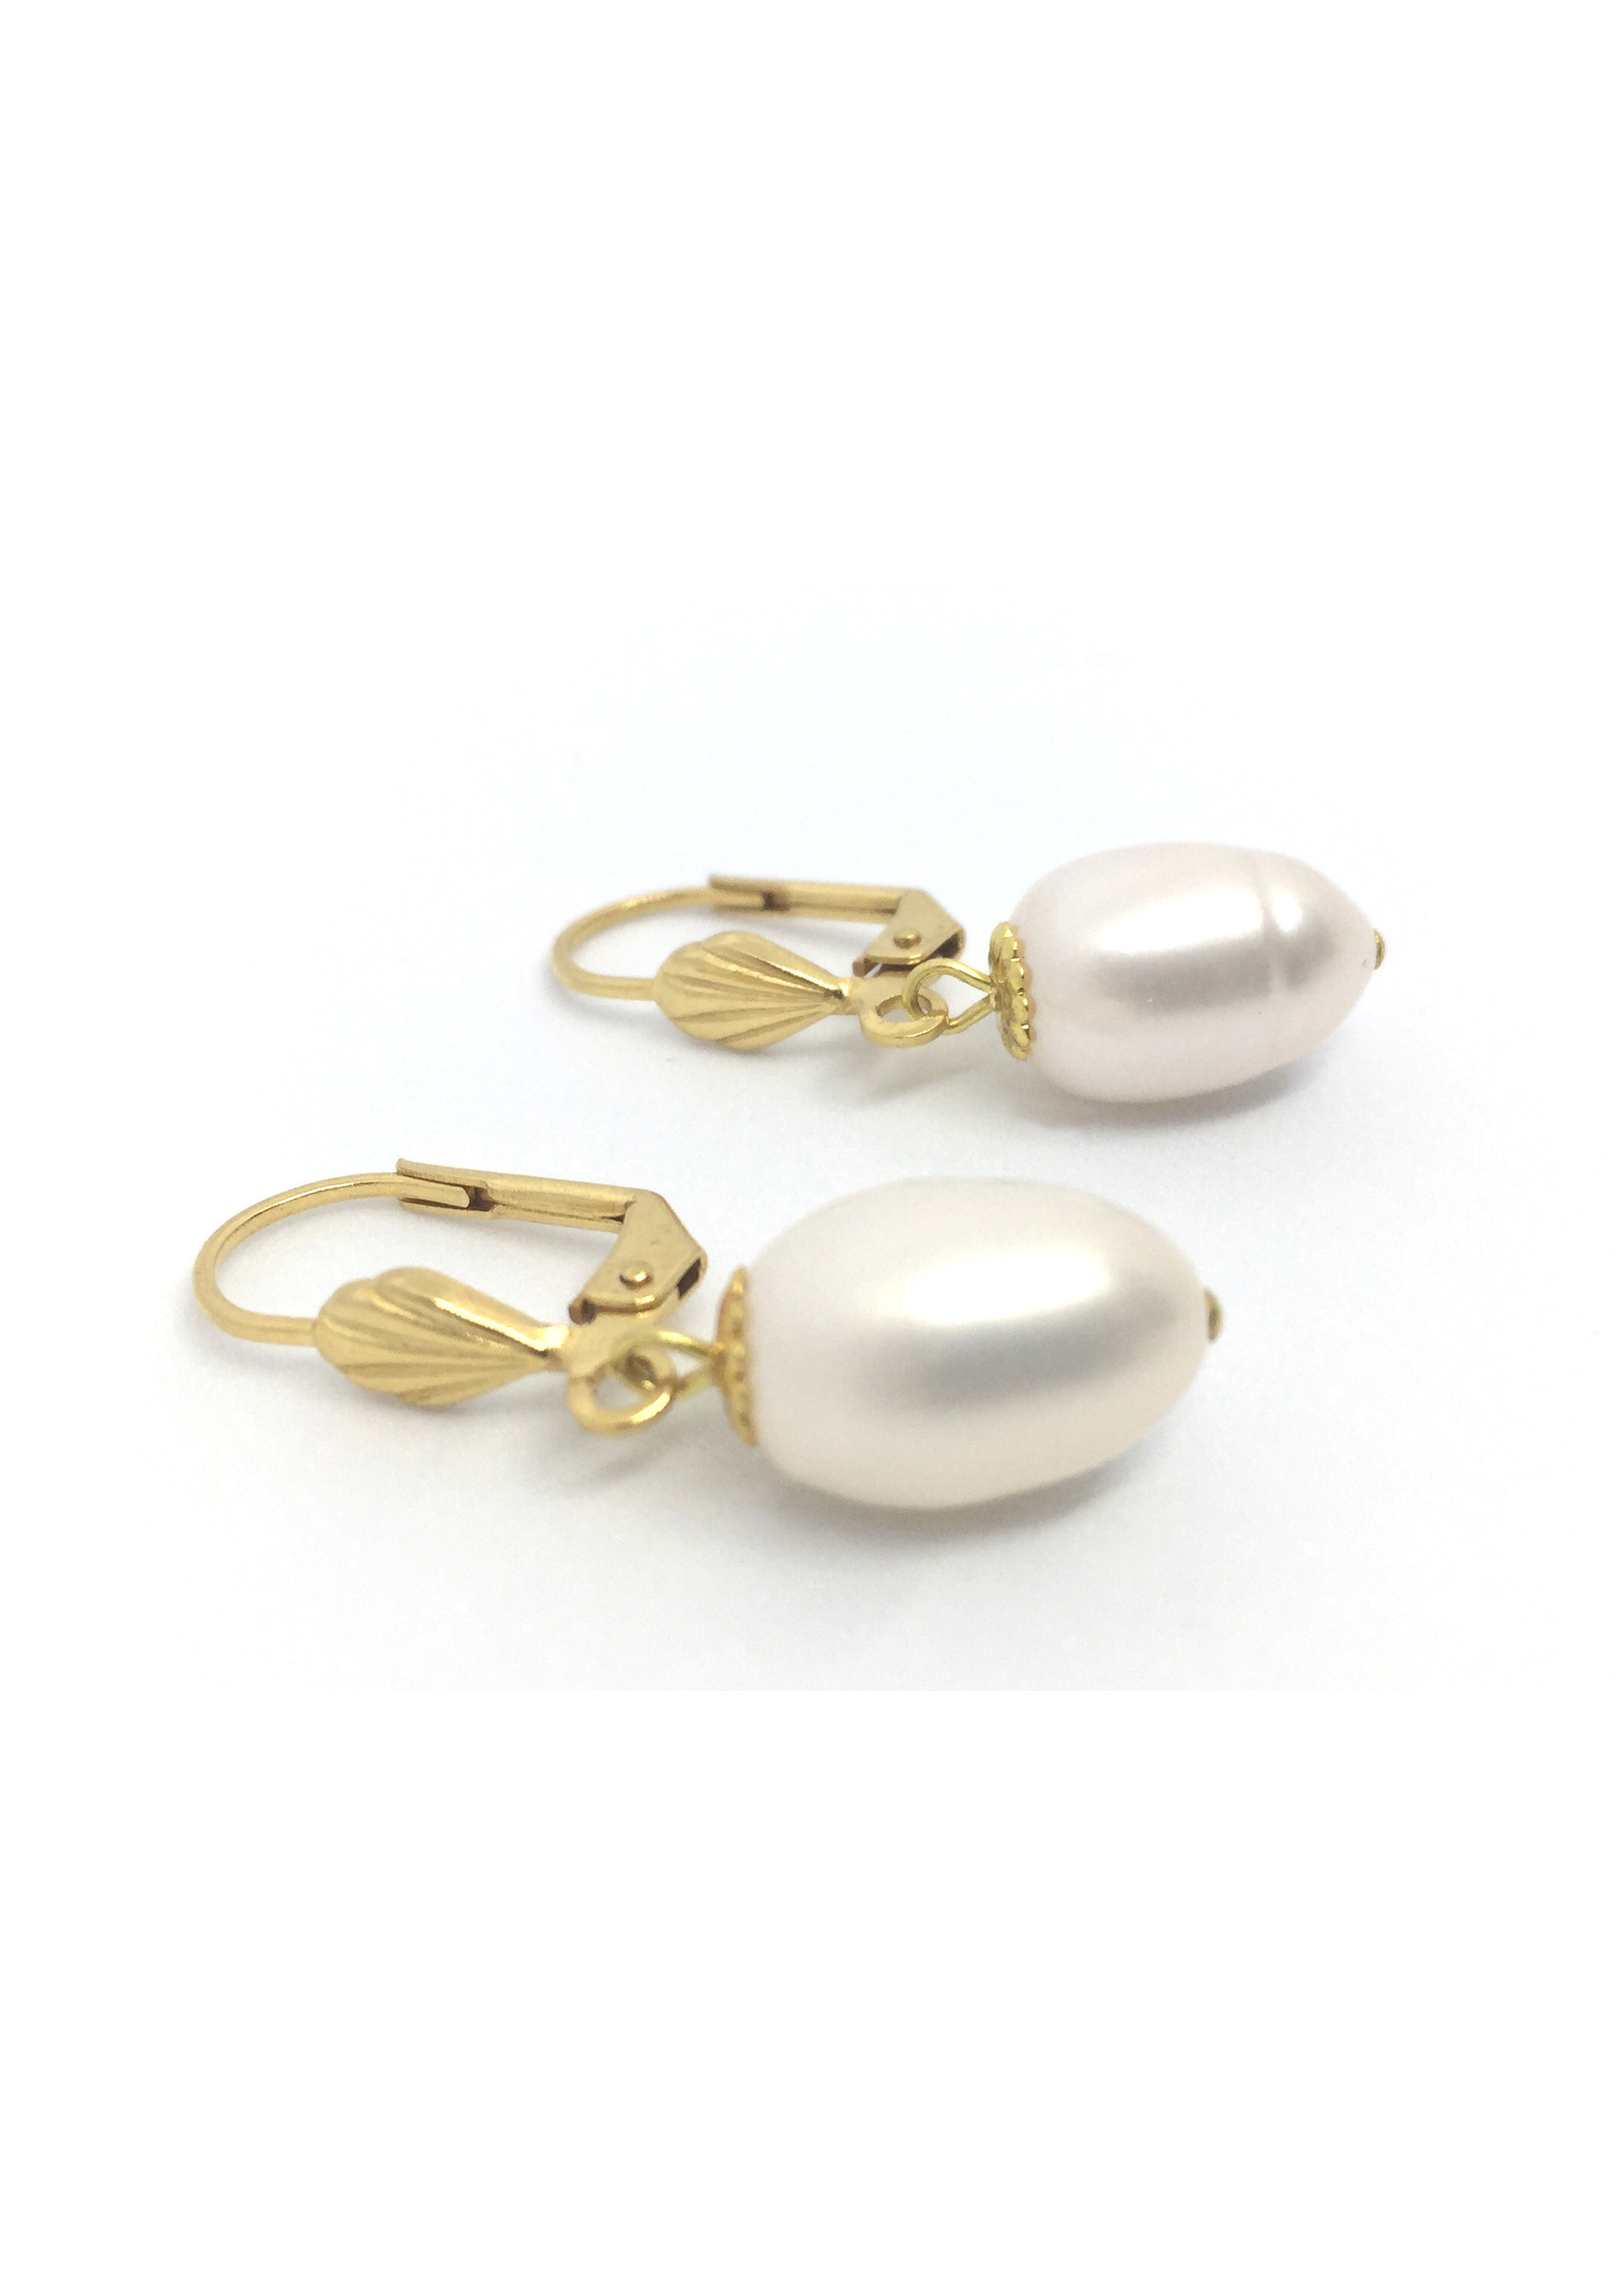 Gold plated earrings from Els de Ruyter with freshwater pearls